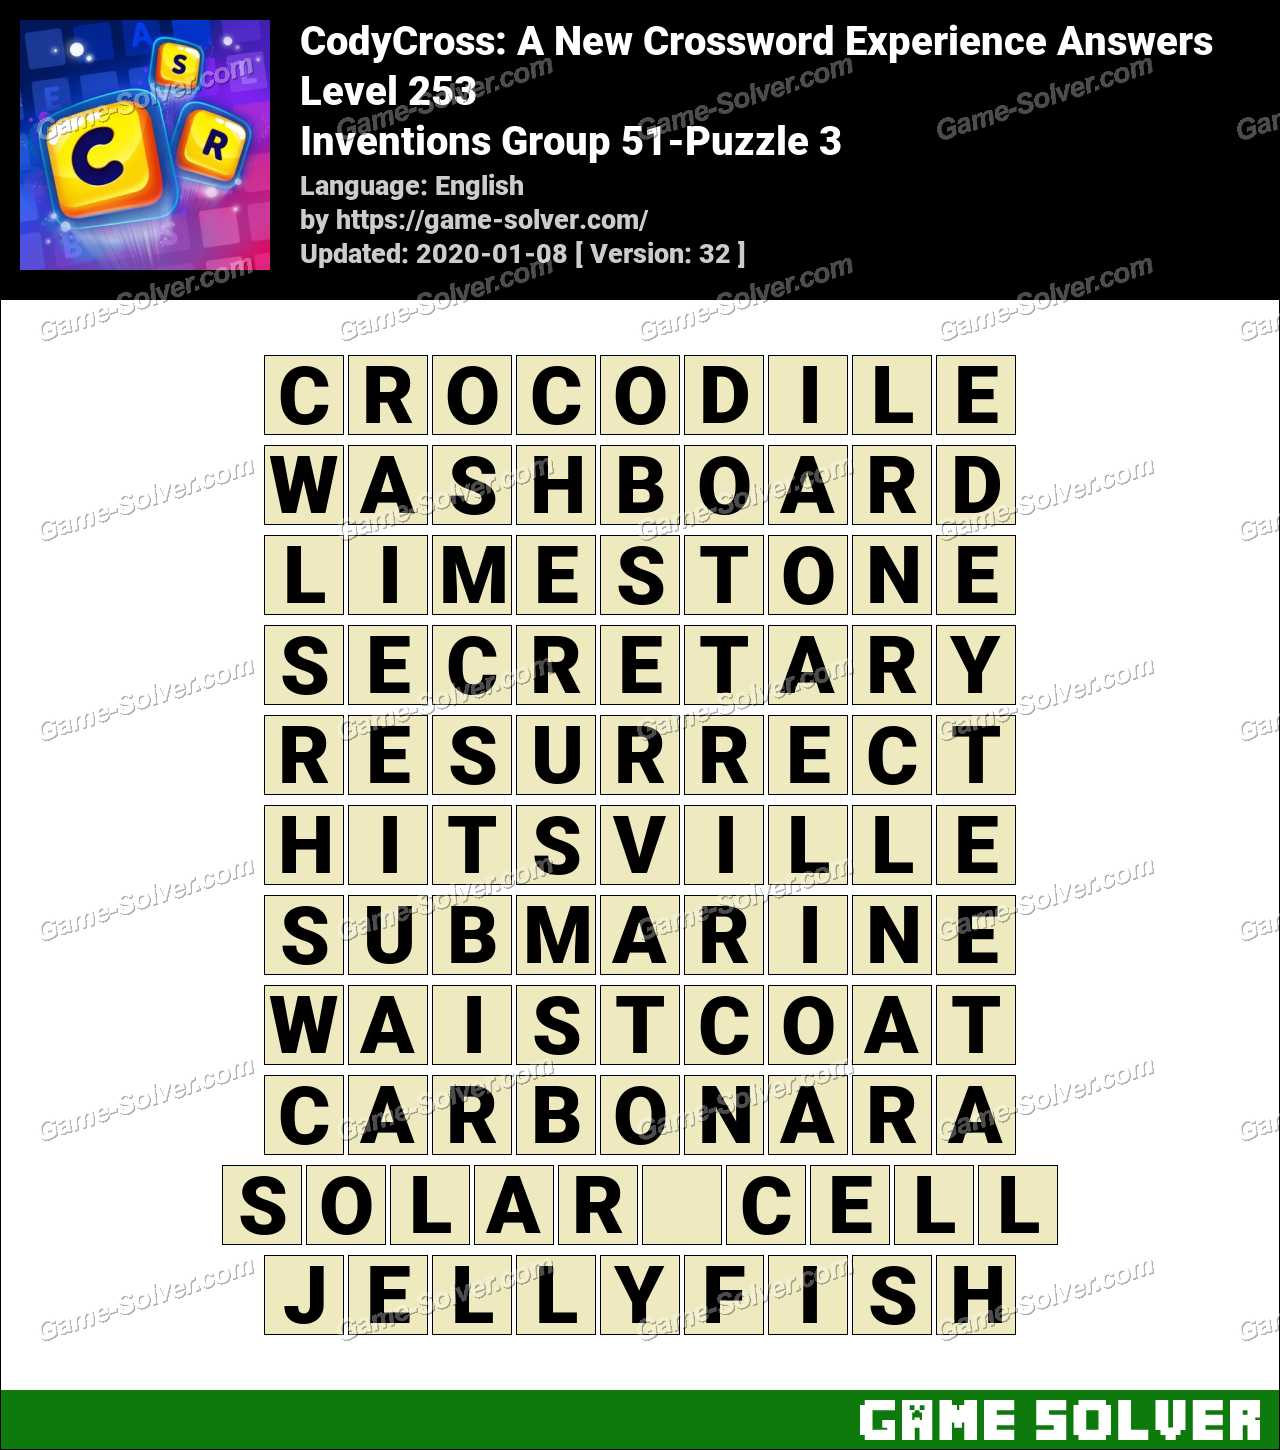 CodyCross Inventions Group 51-Puzzle 3 Answers